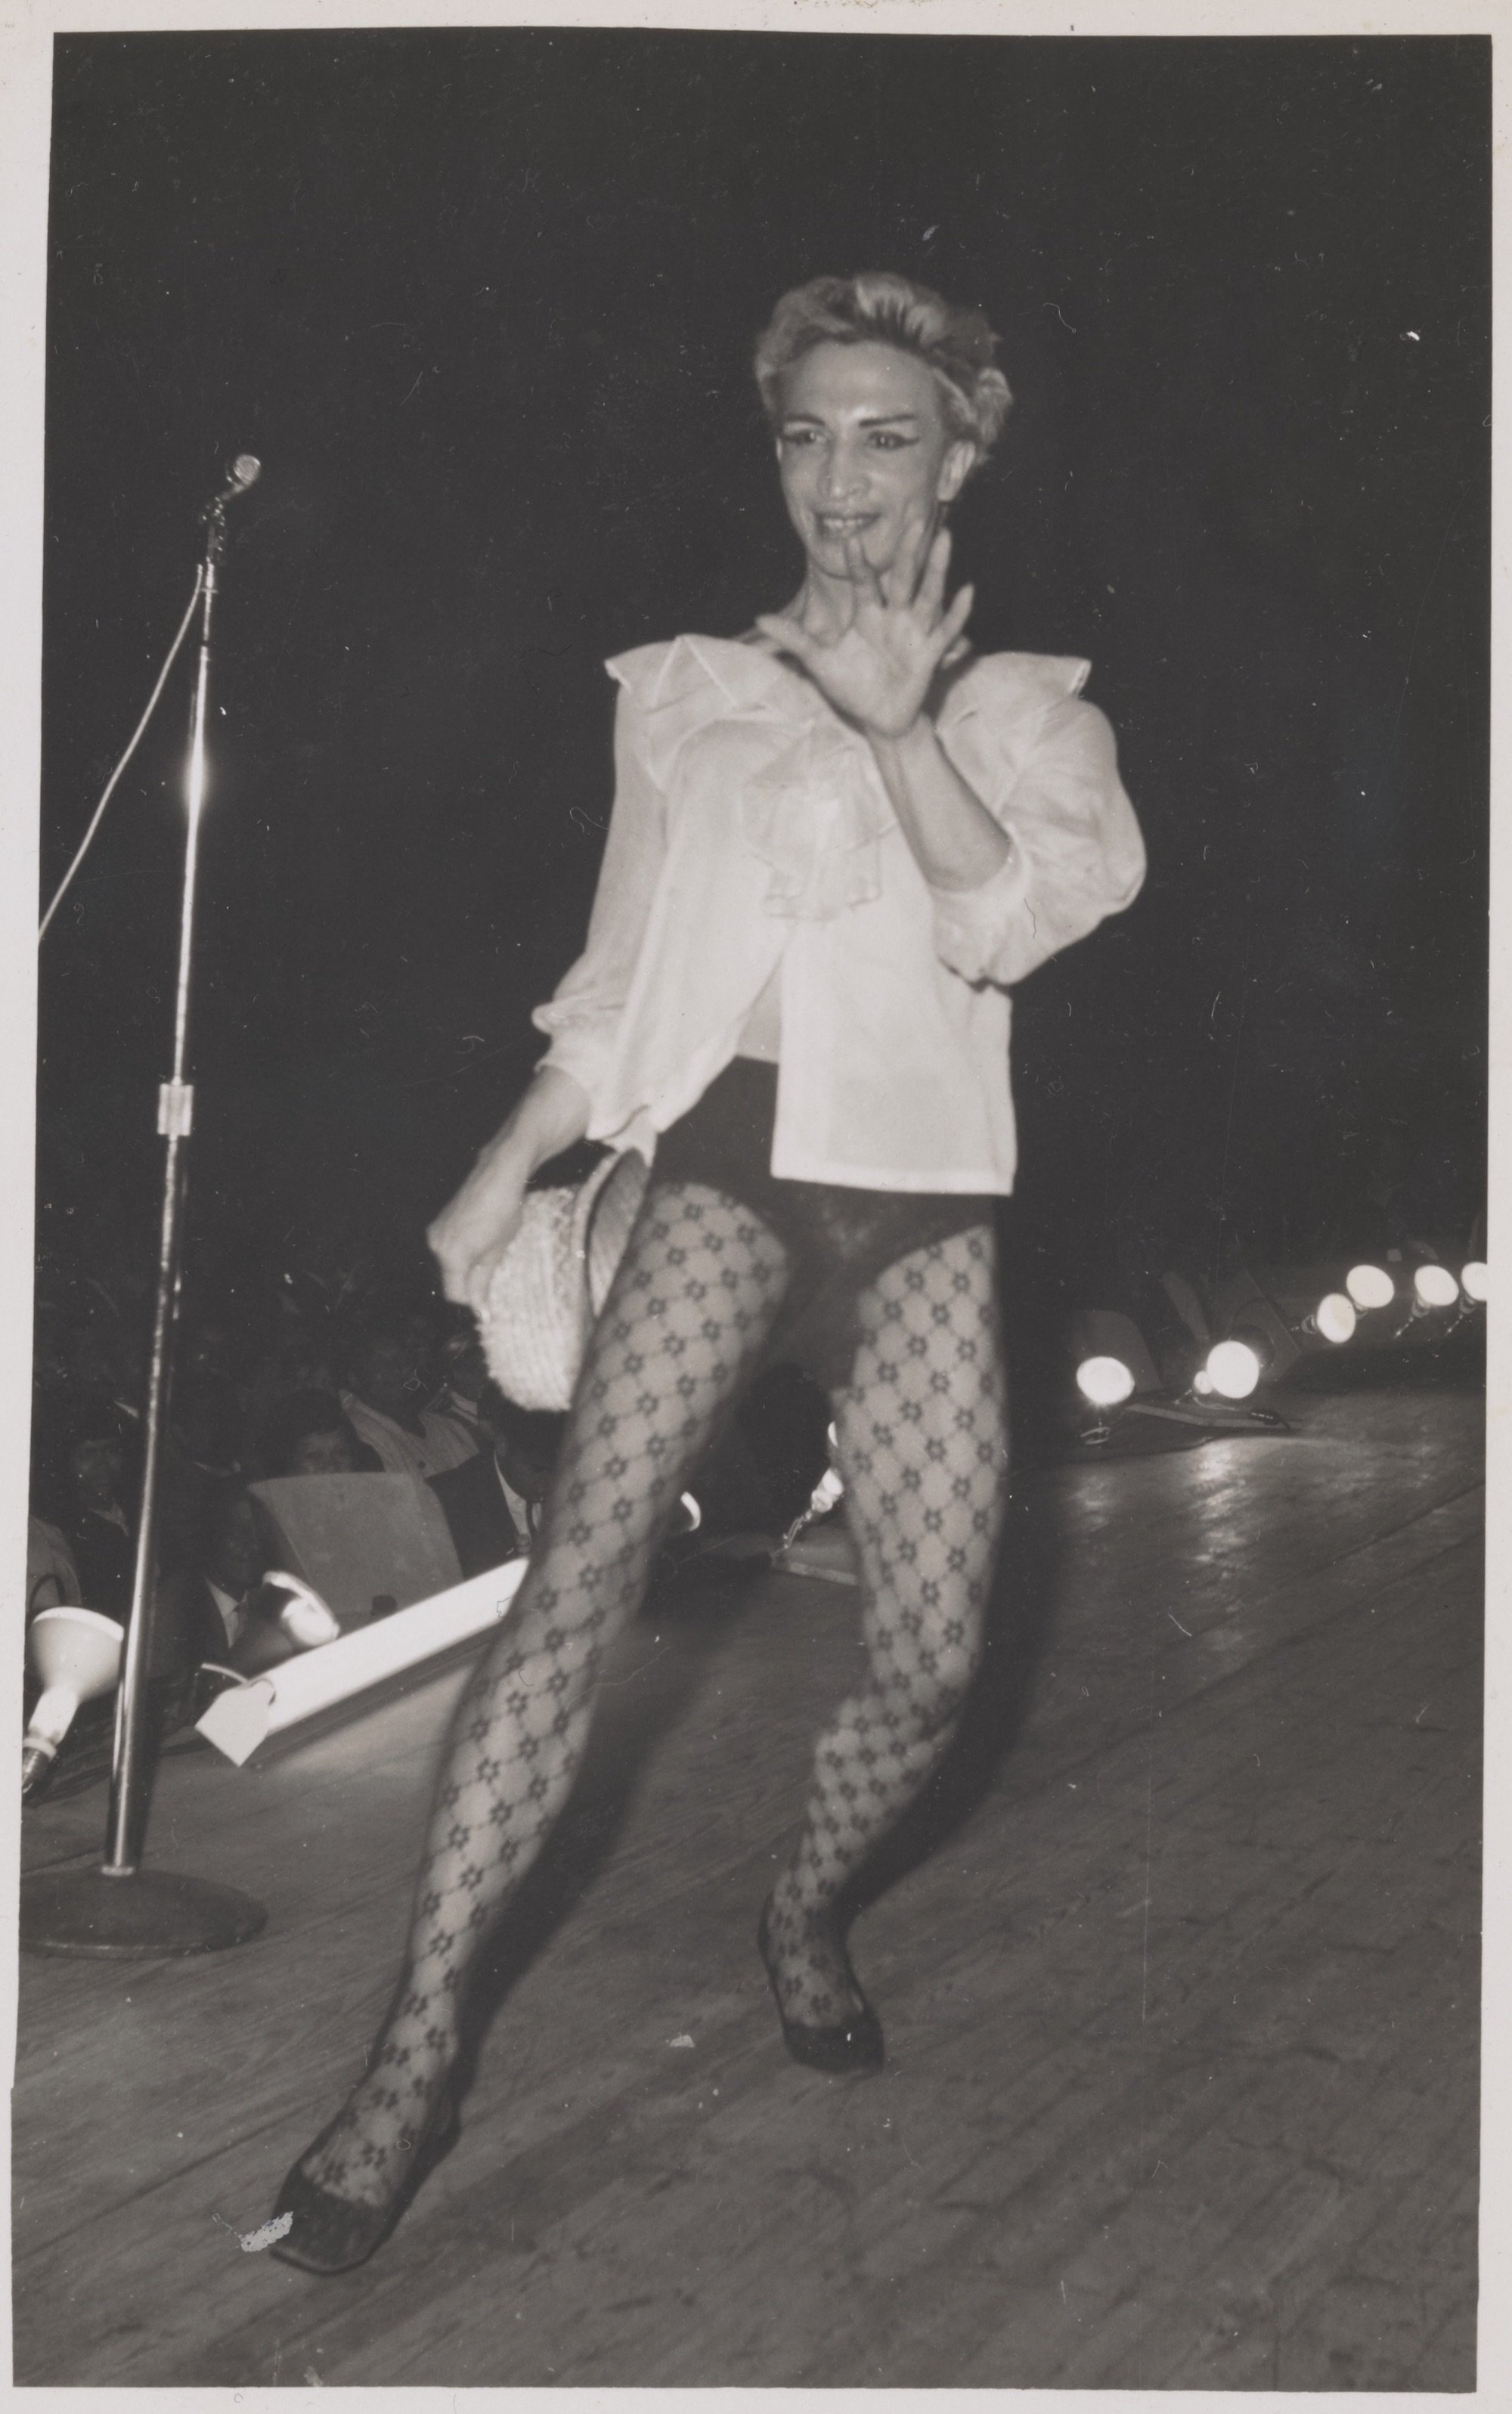 Kewpie on Stage: Competition (Strip Show) at the Kismet Organised by the Stellenbosch Winery, circa 1950 to 1980